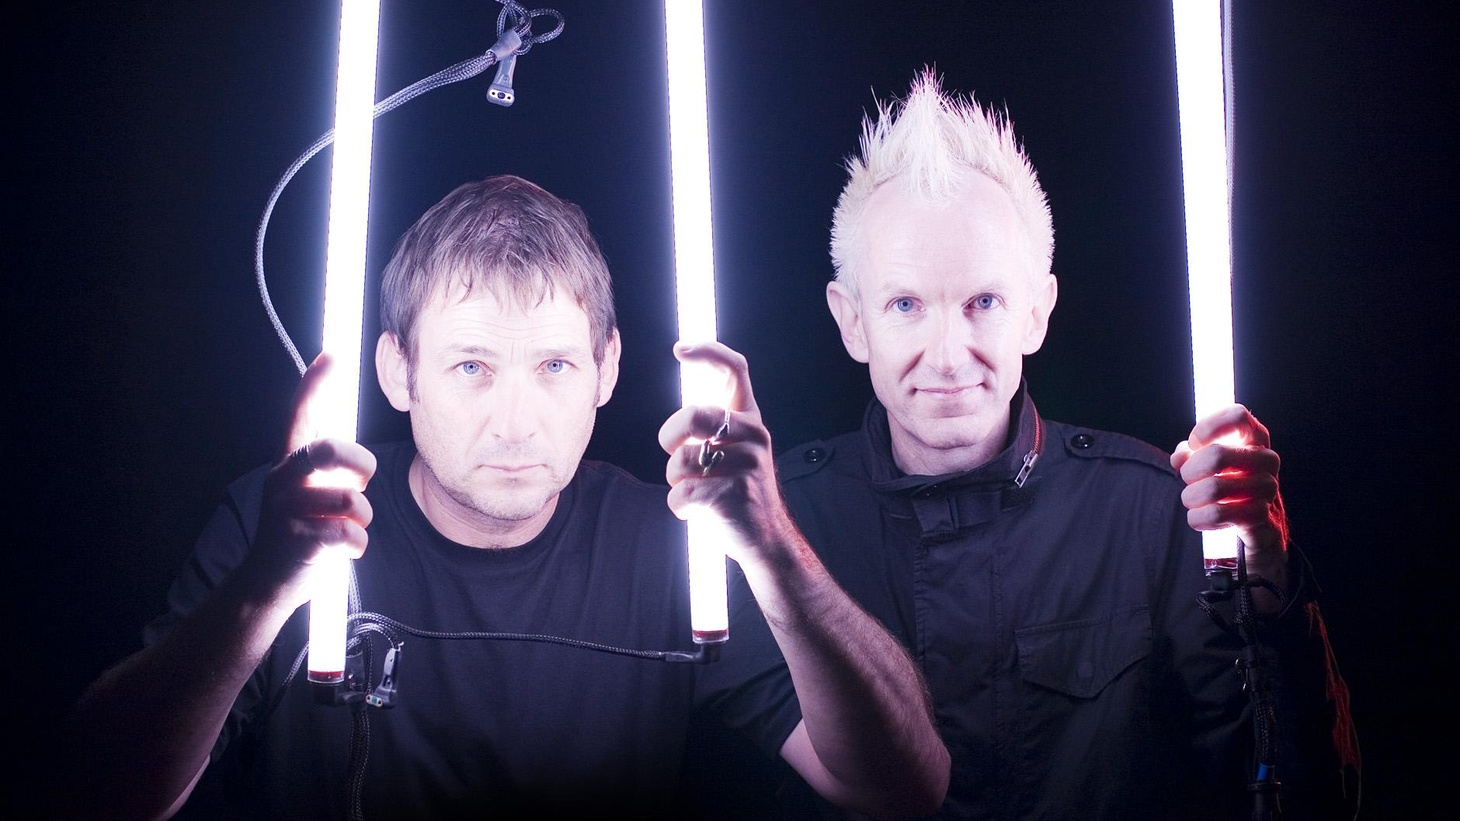 """Pitch Black have been pumping their way through New Zealand's electronic music scene for the last decade. Pitch Black, the new self-titled release features choice tracks and remixes, including Today's Top Tune """"Rude Mechanicals""""."""